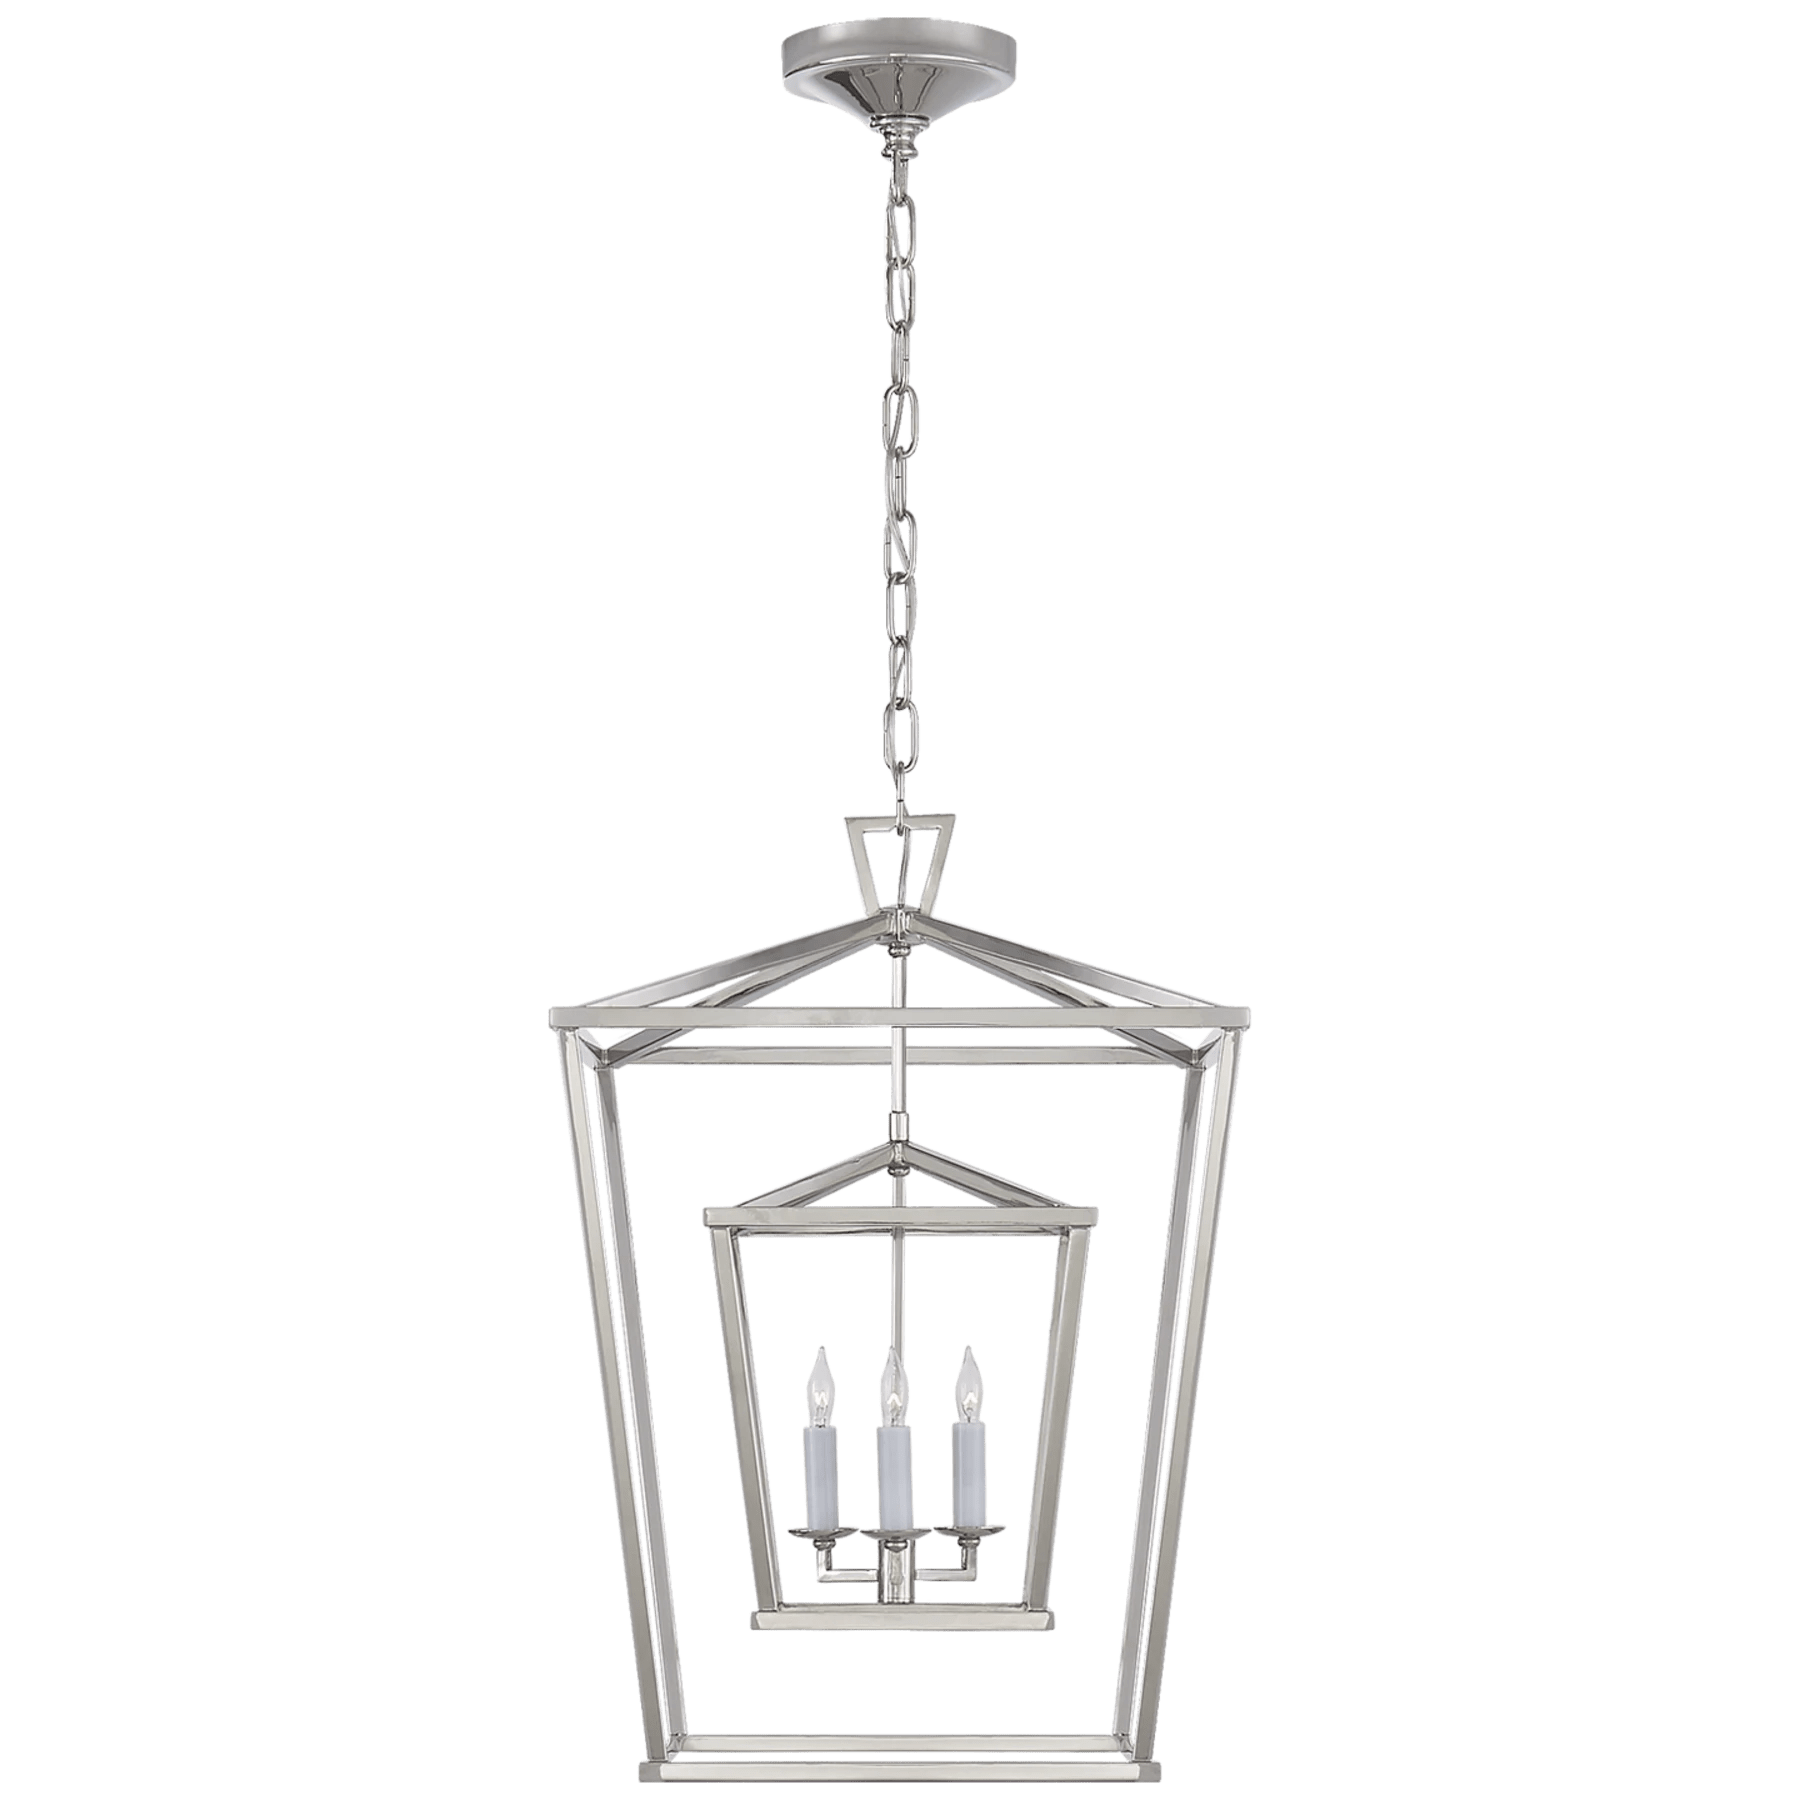 Darlana Medium Double Cage Lantern